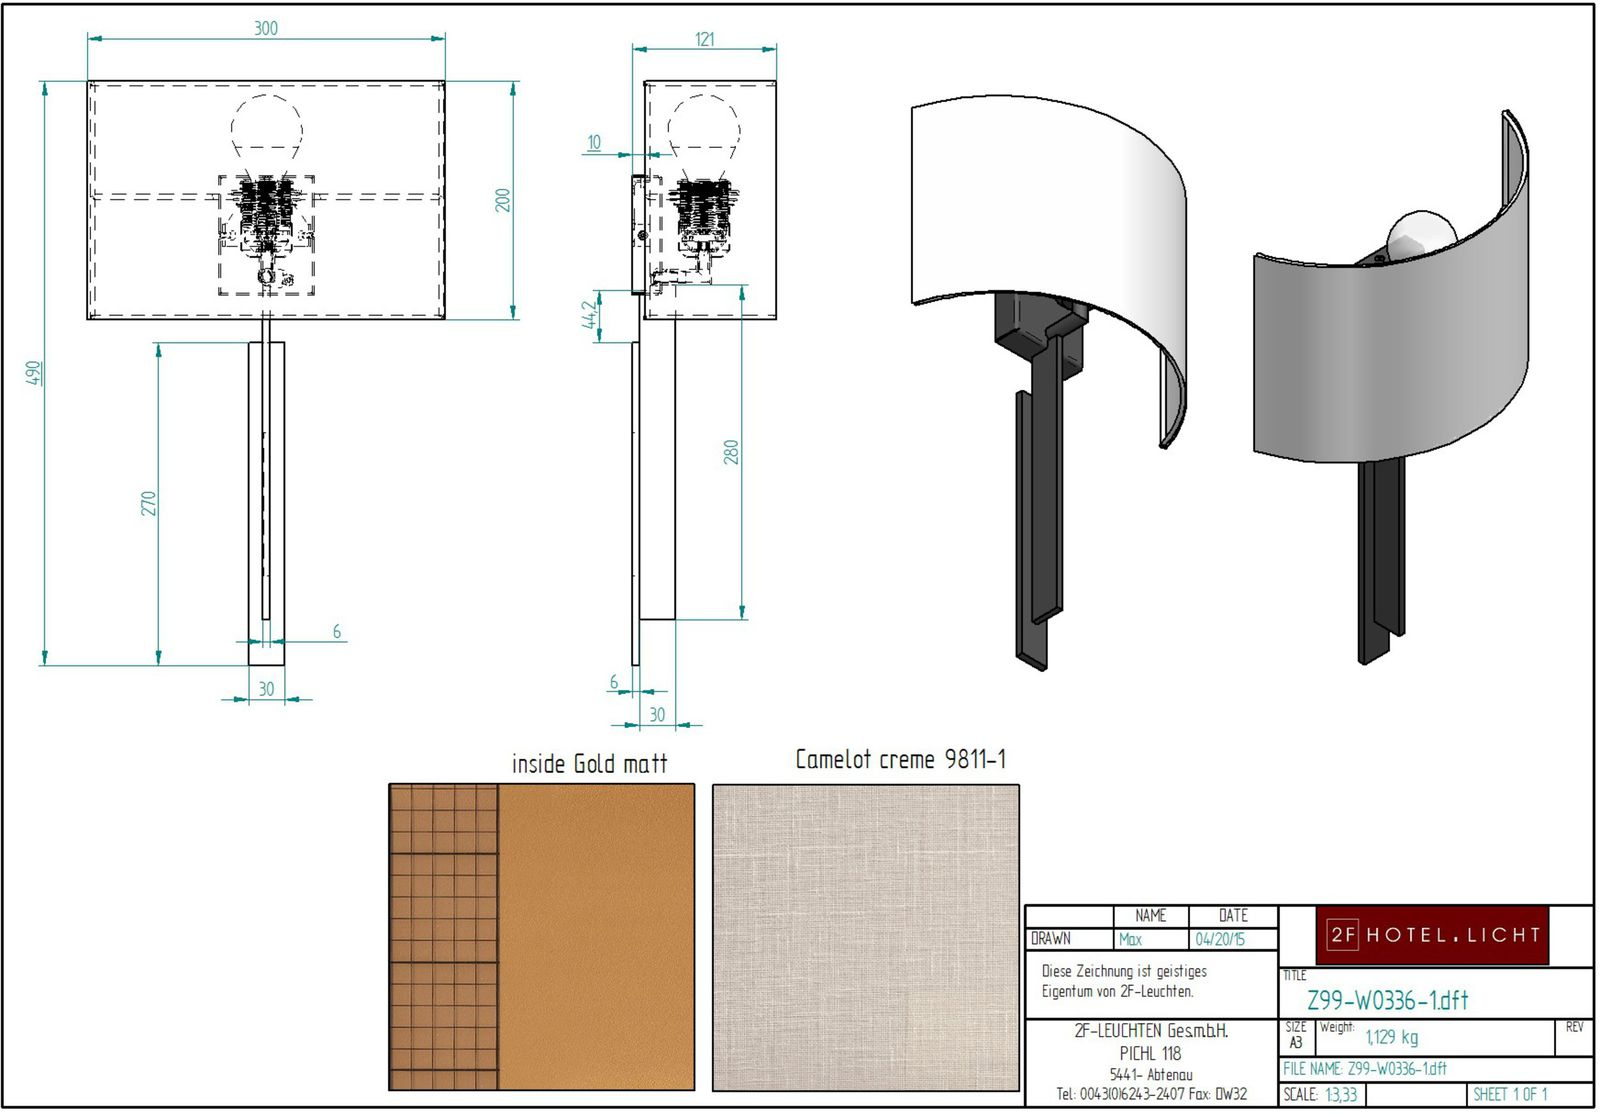 wall lamp, L:121mm, w:300mm, H:490mm, metall surface: M23, socket: 1xE27 illuminant: 1x max. 60W